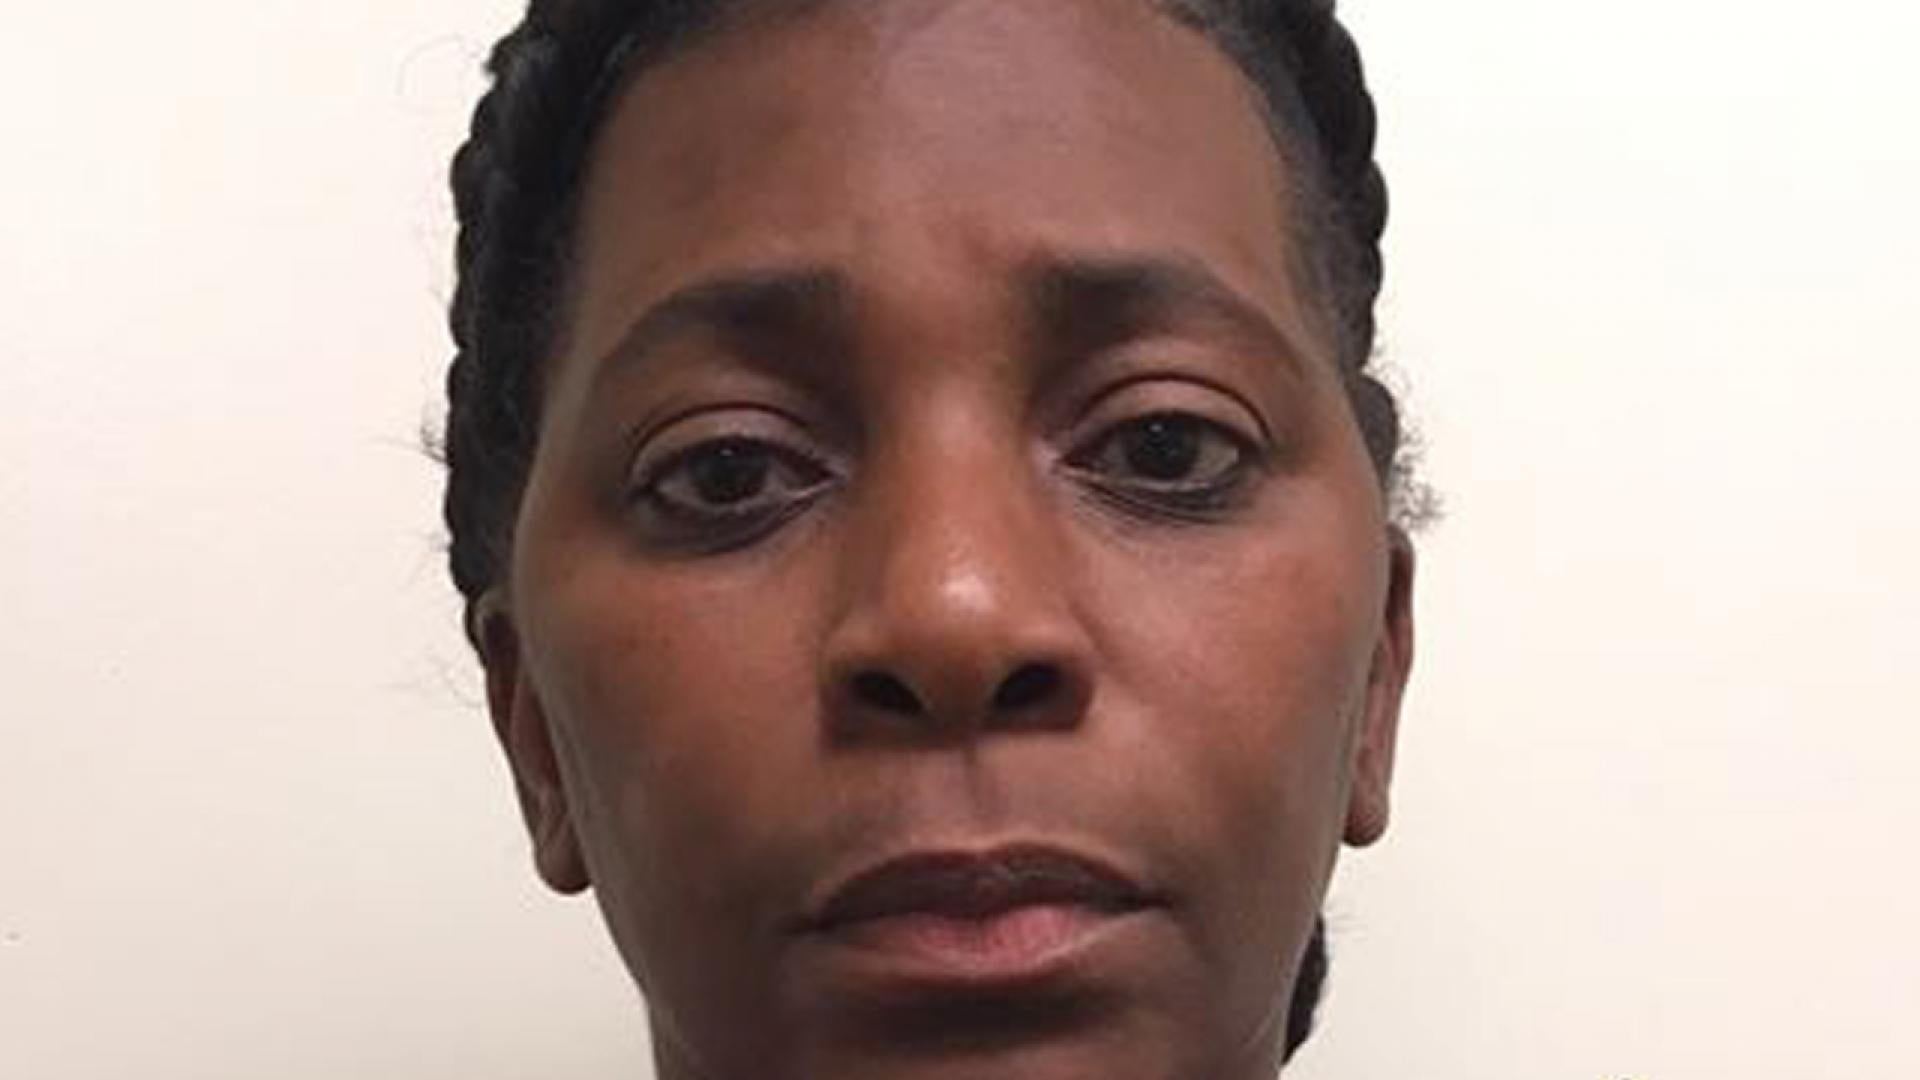 Sonia Charles, 50, was arrested and booked into the Iberia Parish Jail on a first-degree murder charge.